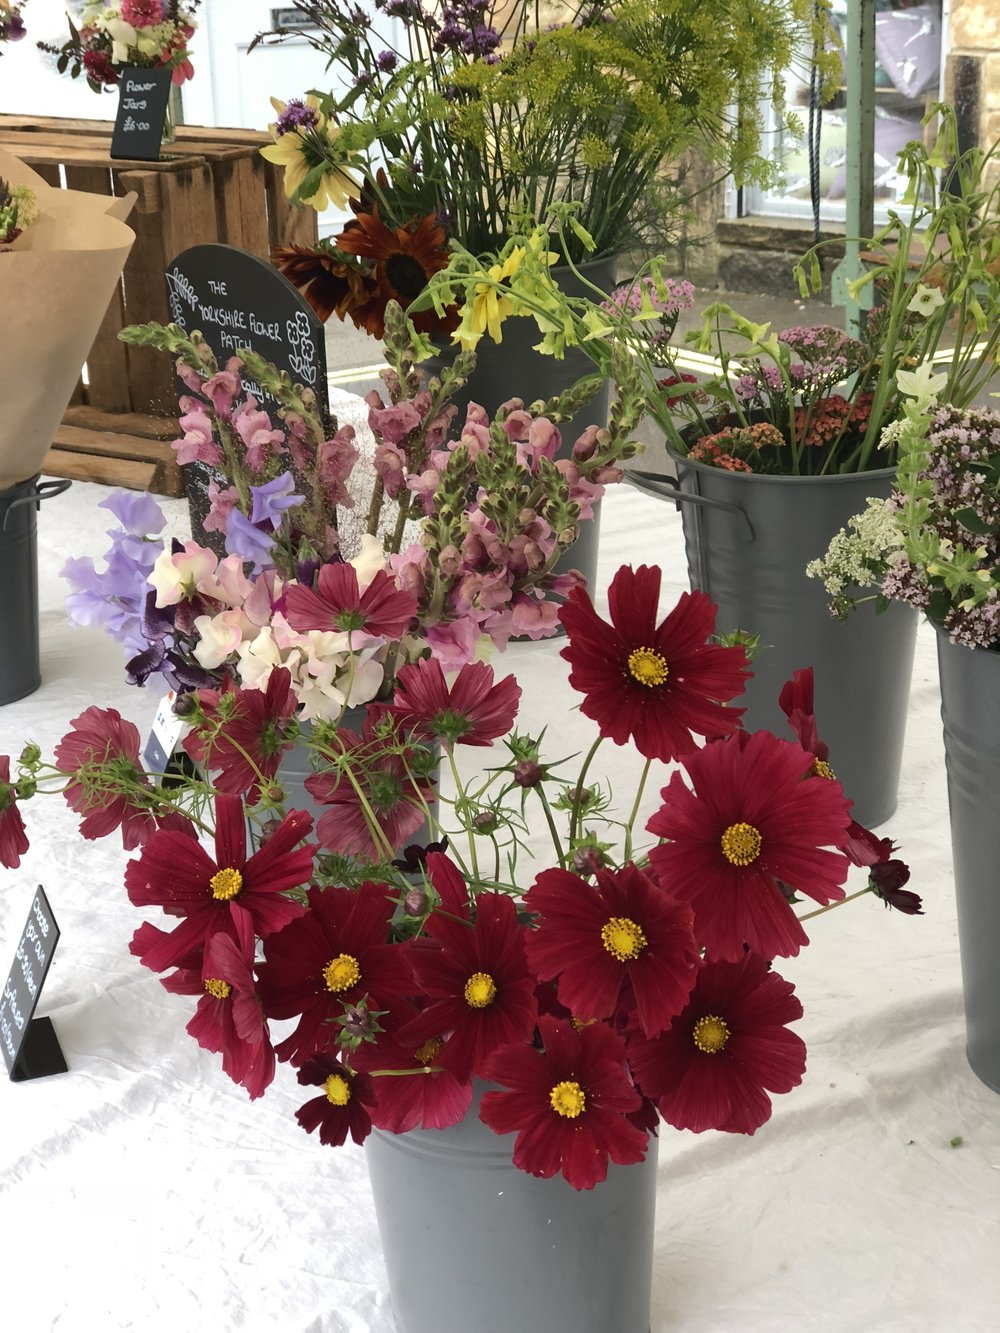 during our main cutting season, april to october, you can often find us at local markets with a large selection of our beautiful flowers. keep an eye on our social media pages to find out where we will be next. -